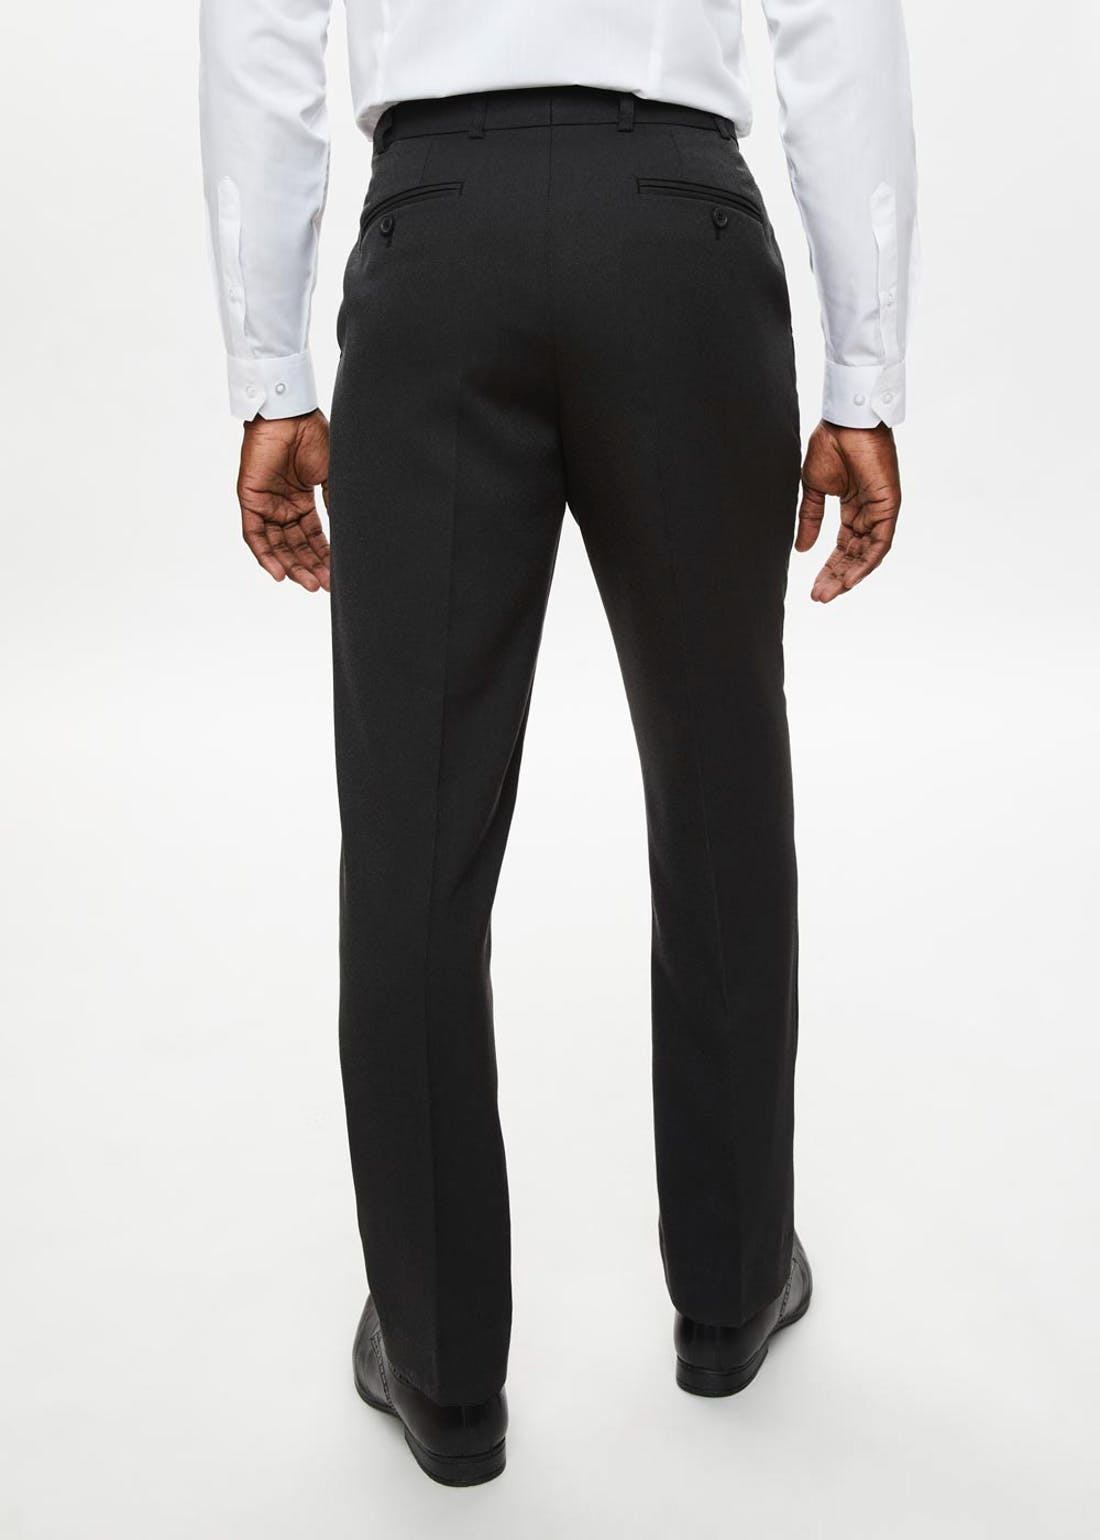 Taylor & Wright Wool Touch Textured Trousers